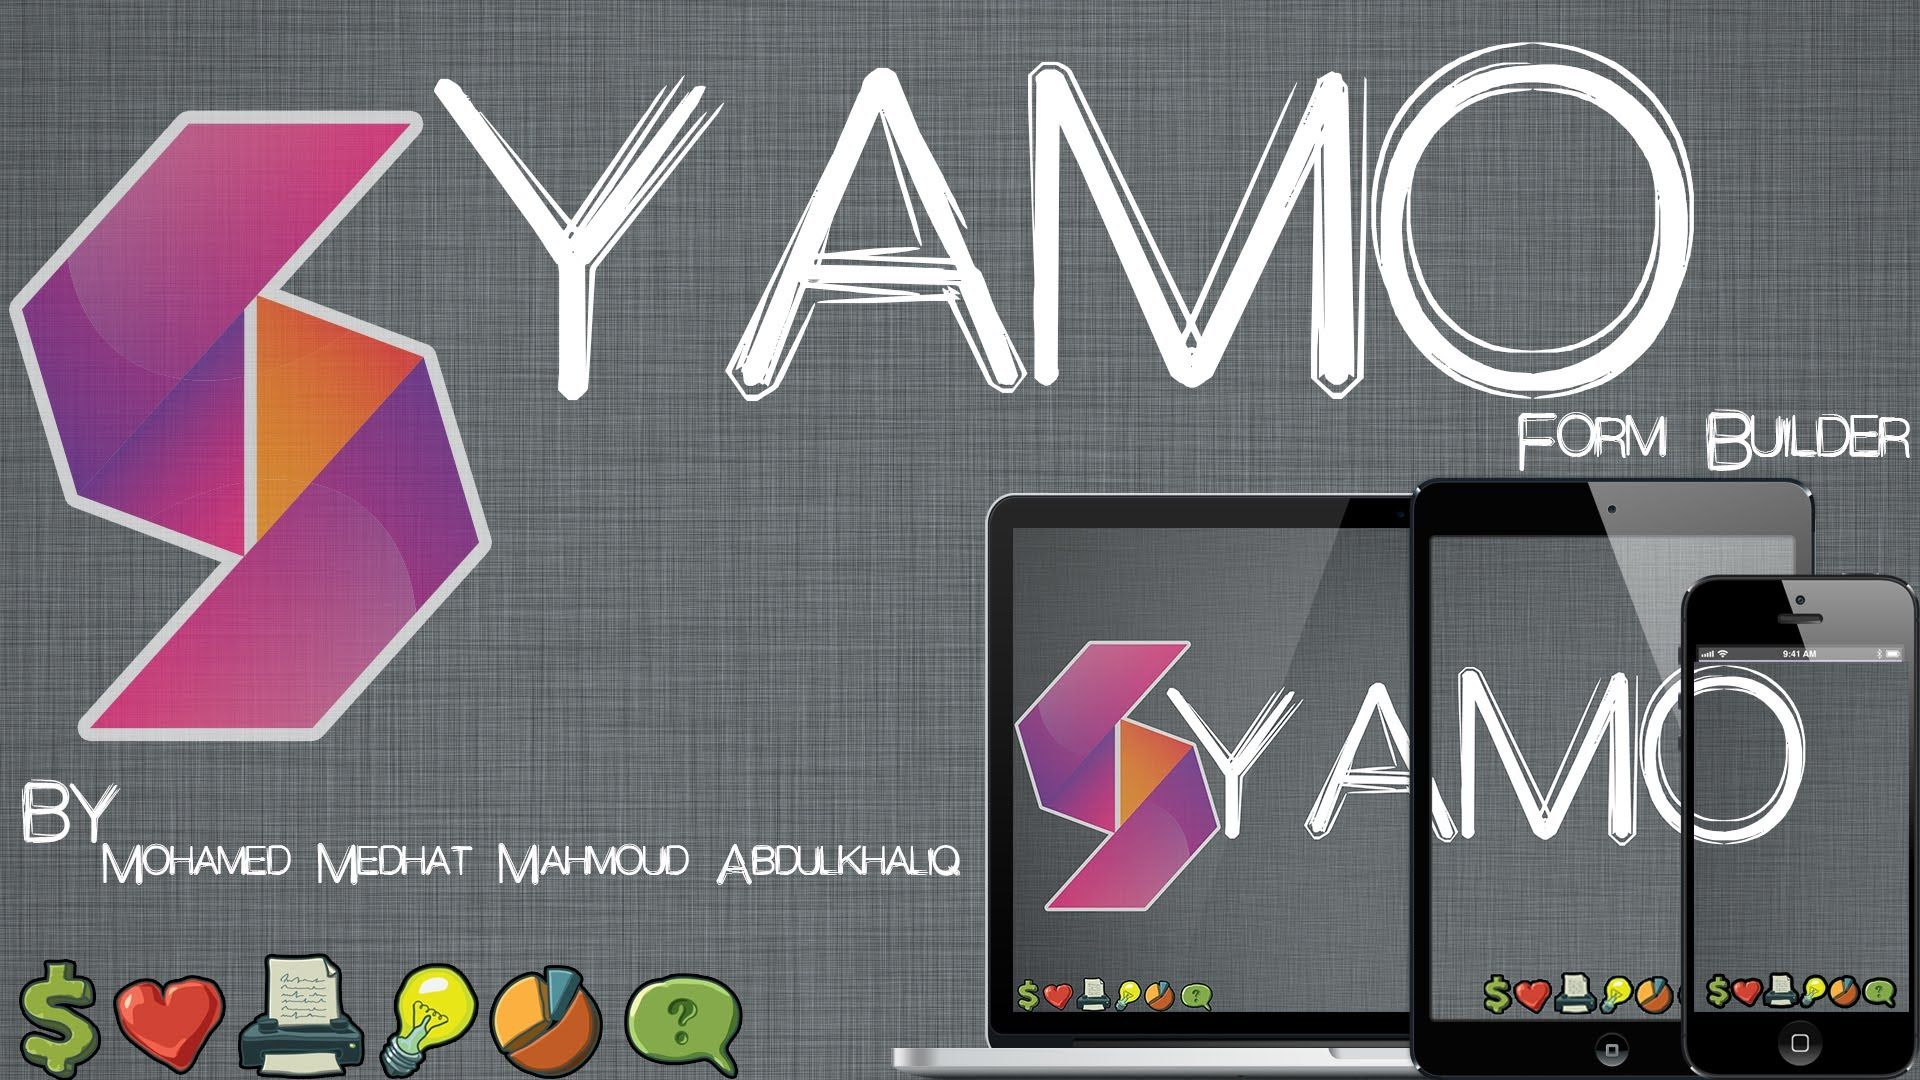 YAMO Form Builder